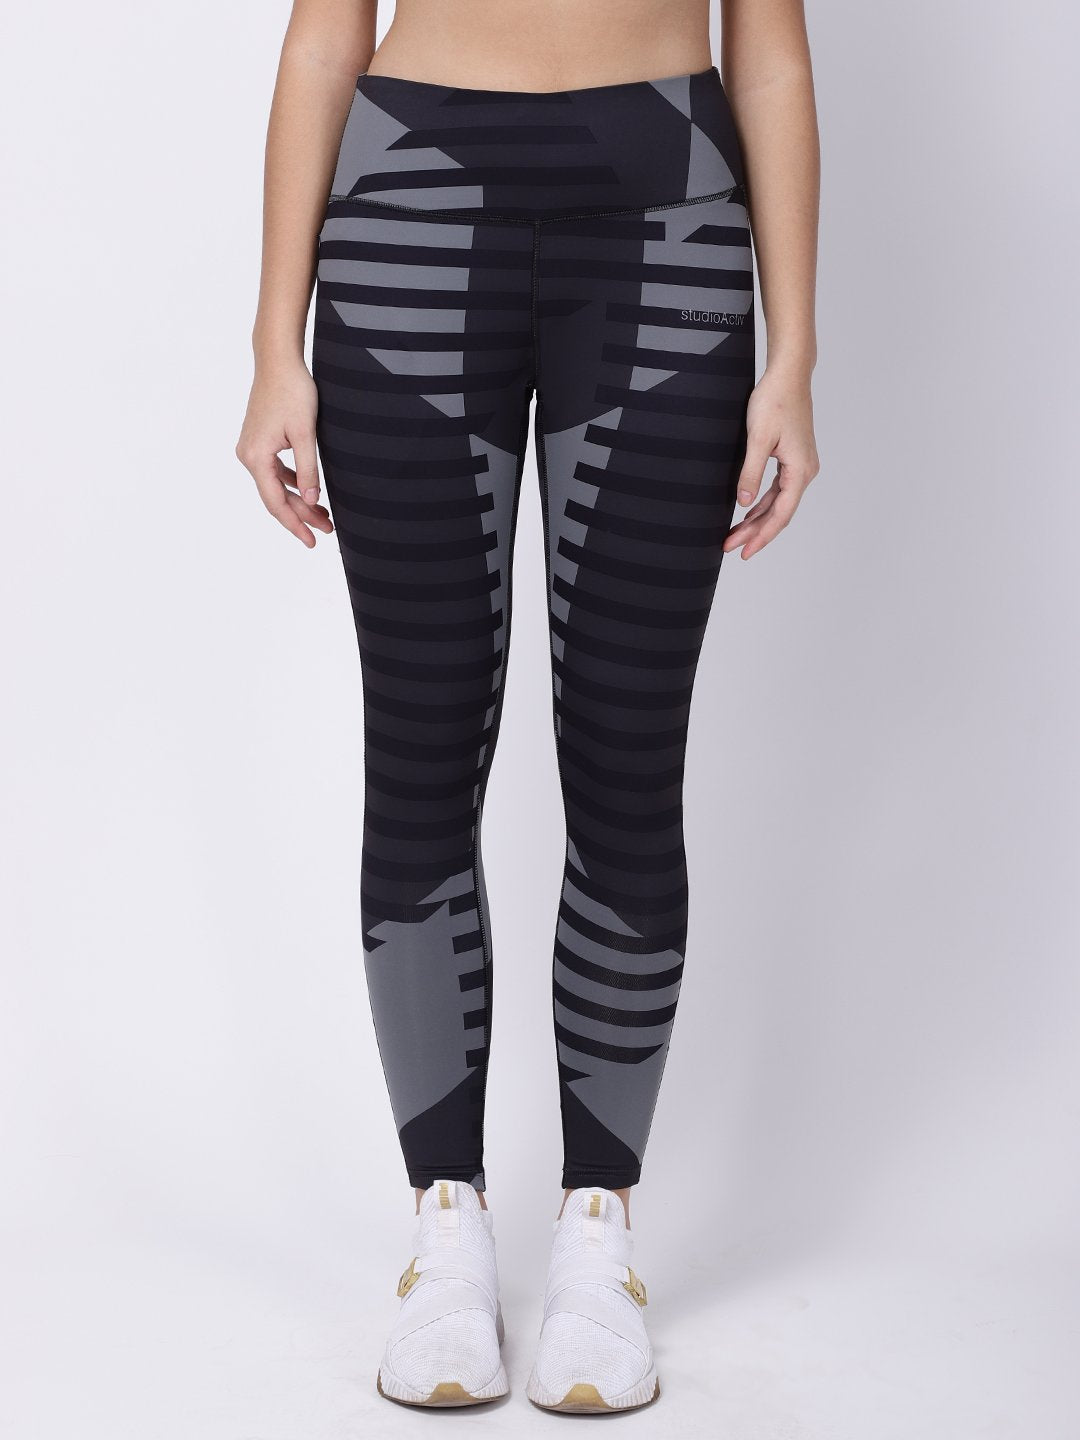 Grey Black Print Power Fashion Leggings